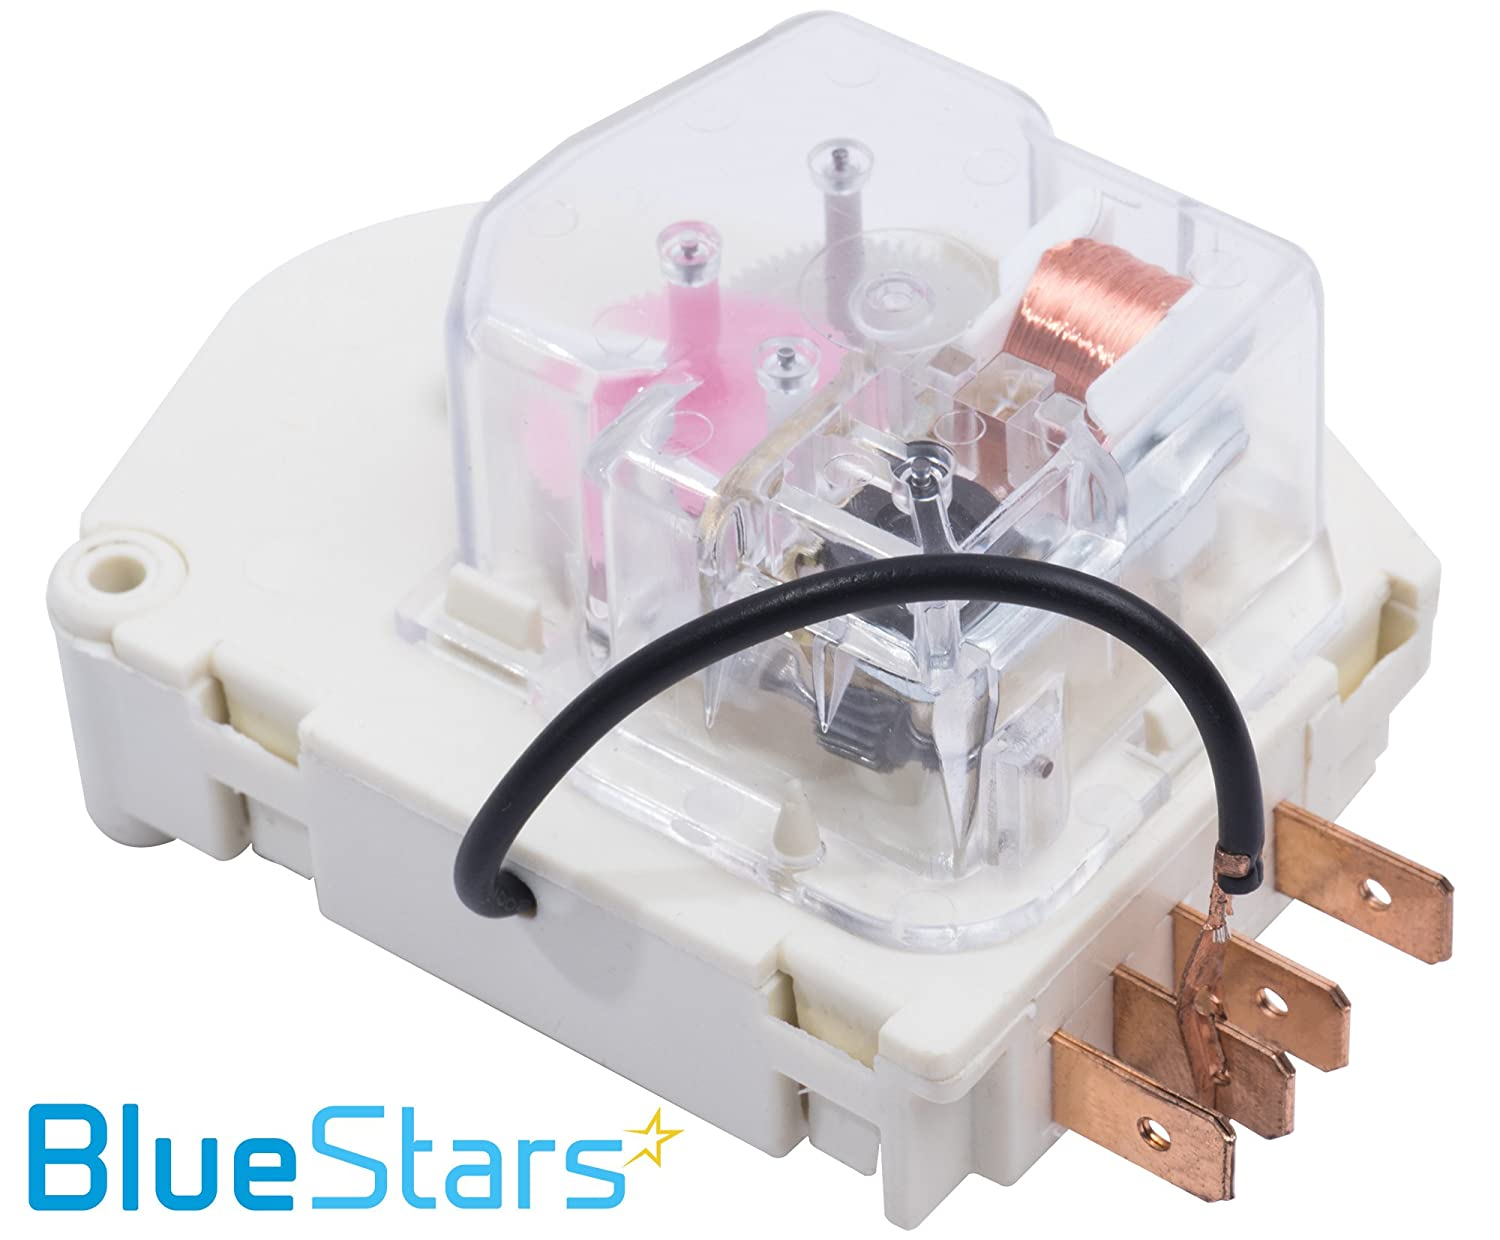 W10822278 Refrigerator Defrost Timer By Blue Stars Magic Chef Wiring Diagram Exact Fit For Whirlpool Kitchenaid Kenmore Replaces Ps11723171 945514